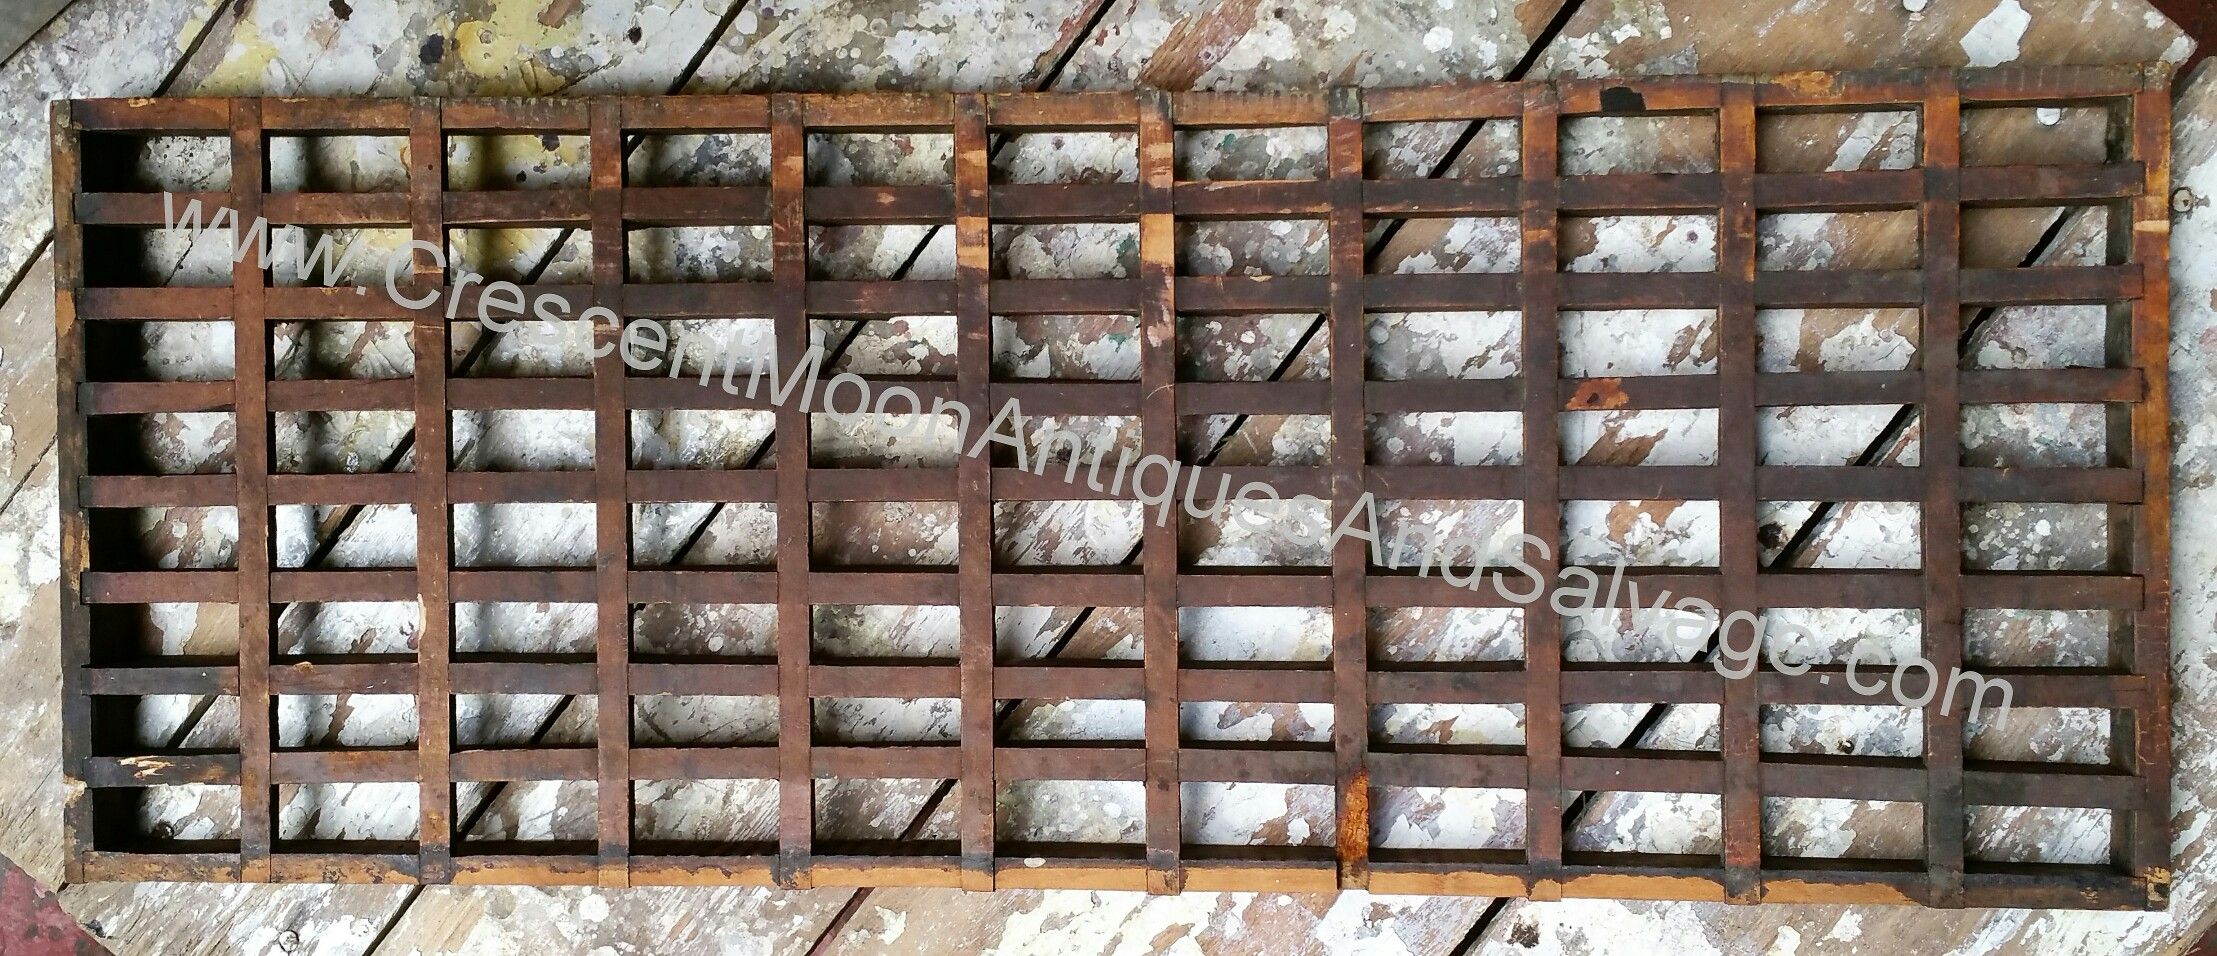 Salvage wood floor vent grate cold air return Cold air